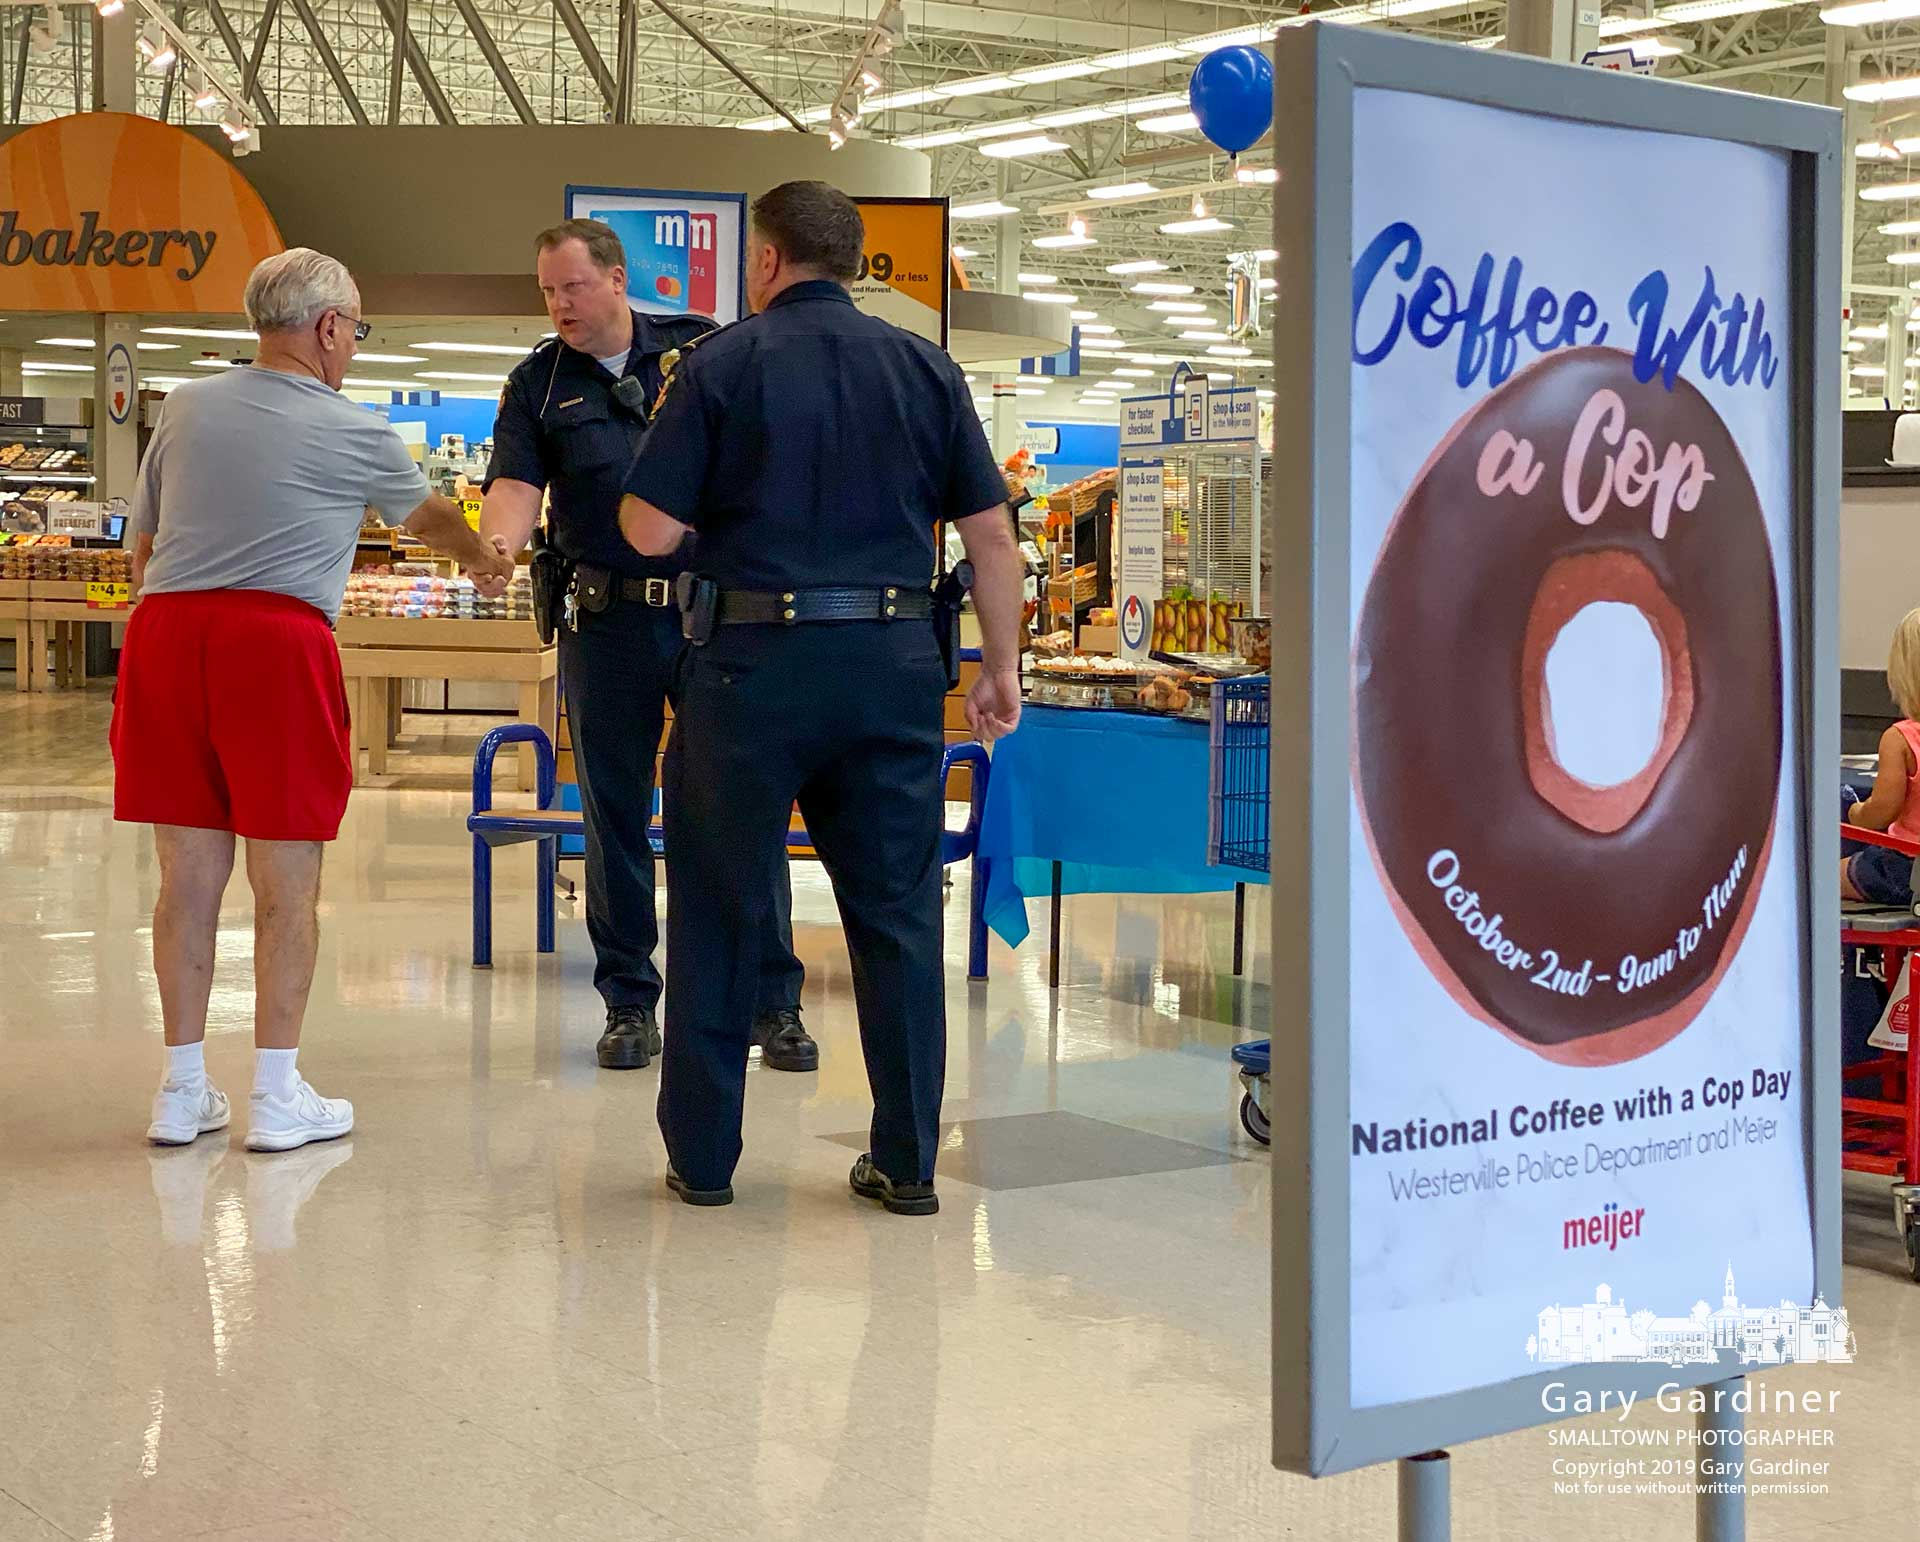 Westerville police officers greet a customer at Meijer during Coffee With A Cop Day. My Final Photo for Oct. 2, 2019.